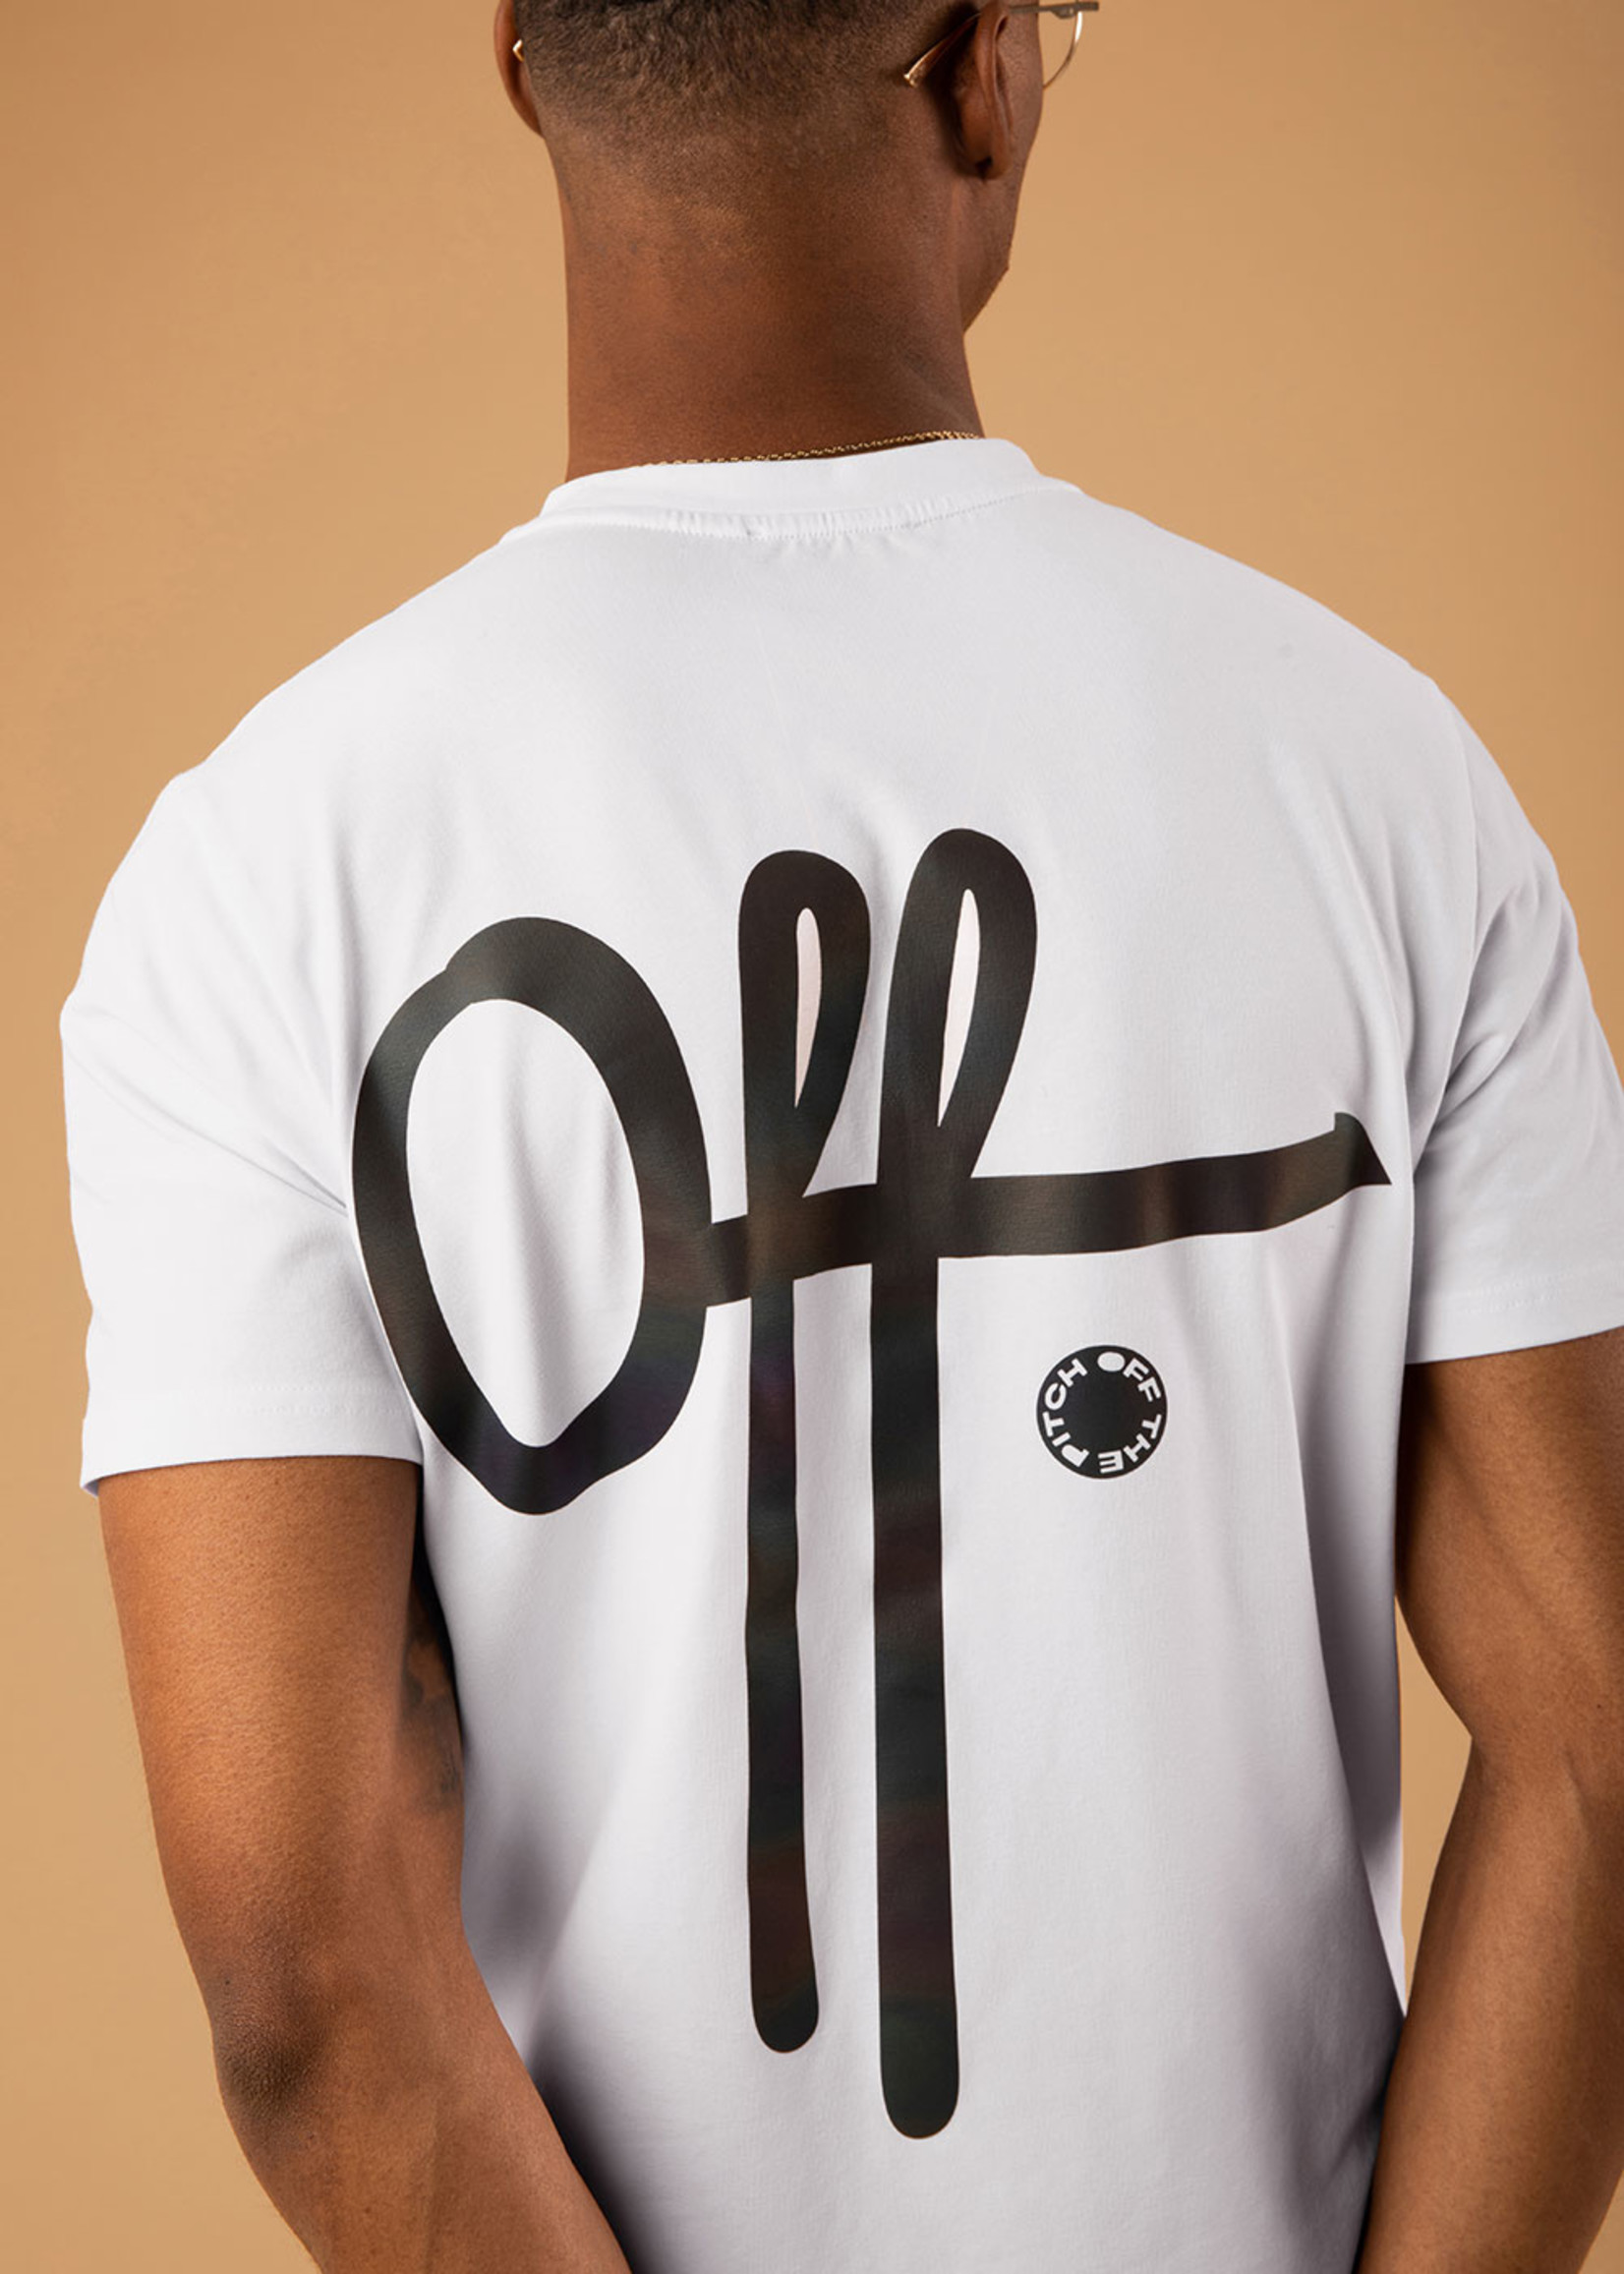 OFF THE PITCH The Illuminated 2.0 Slim Fit - White